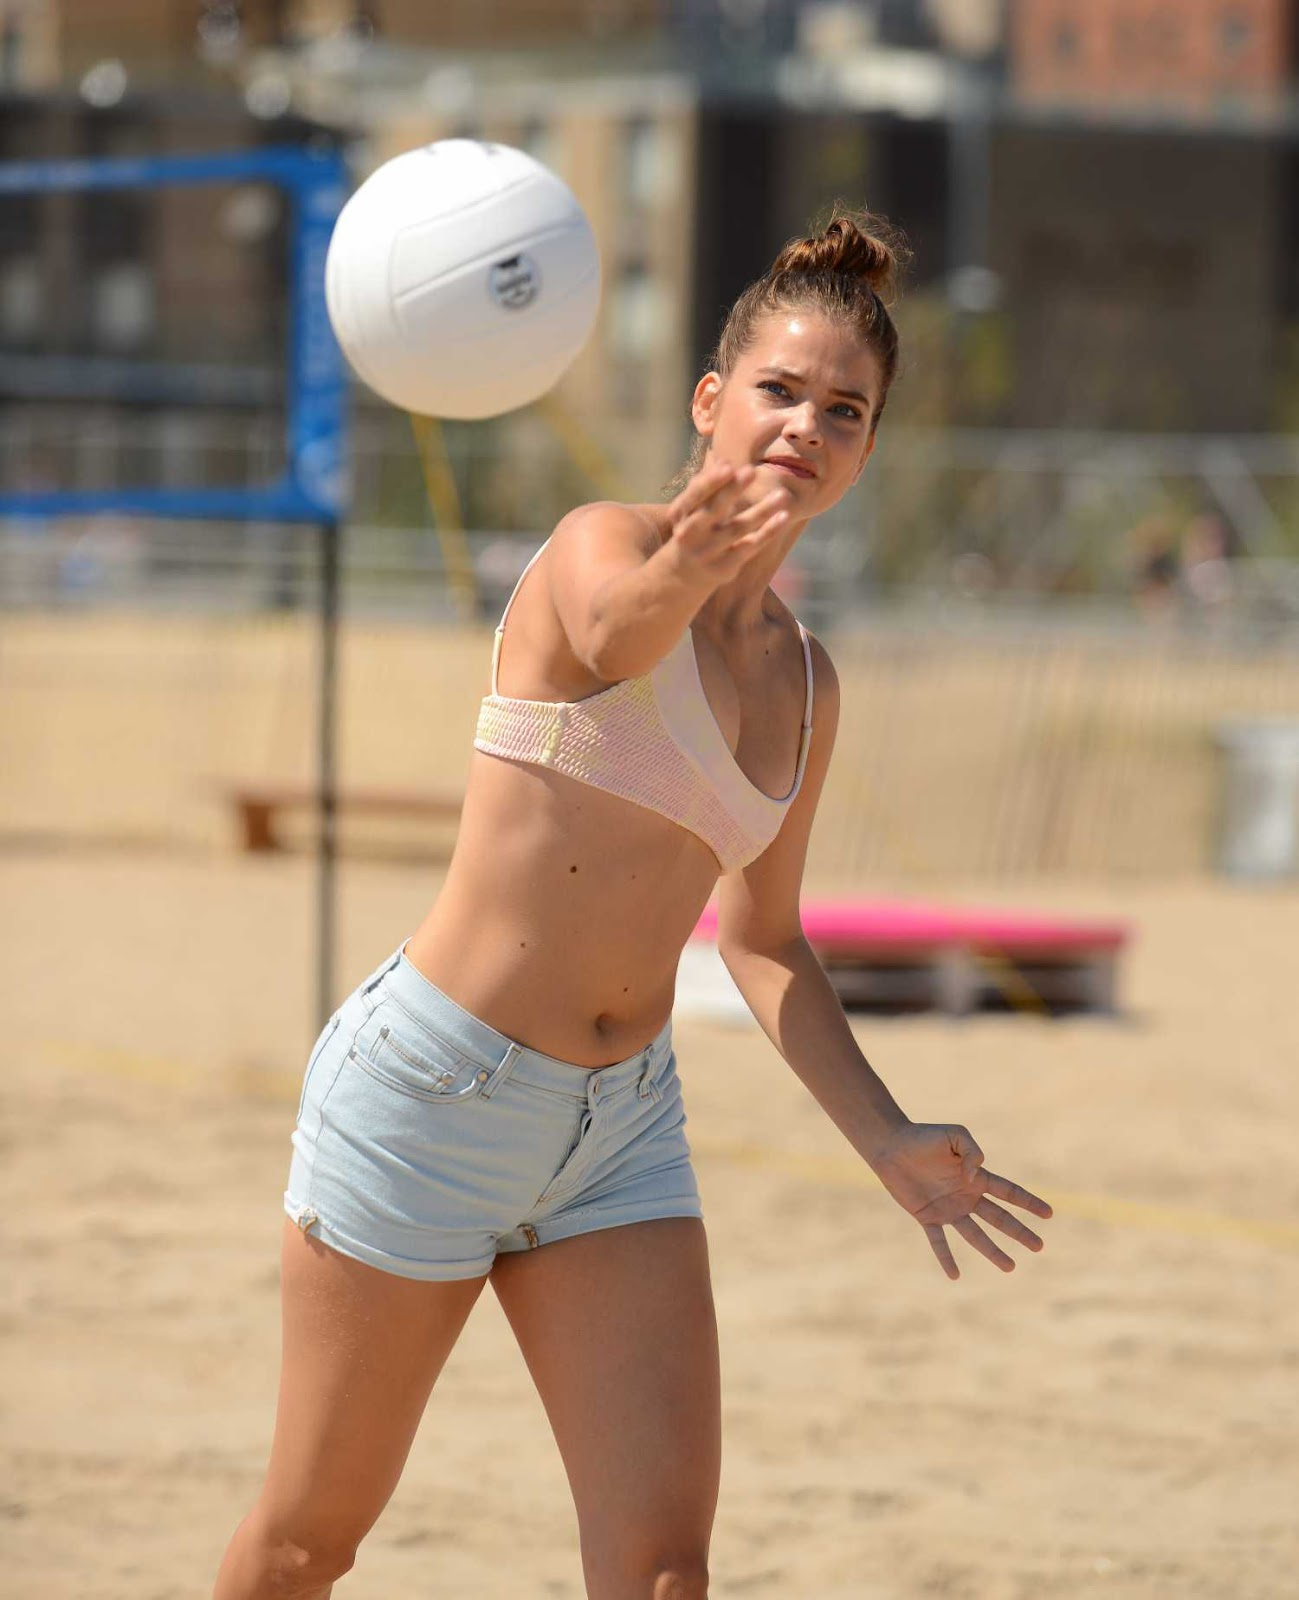 Barbara Palvin Hot Photos